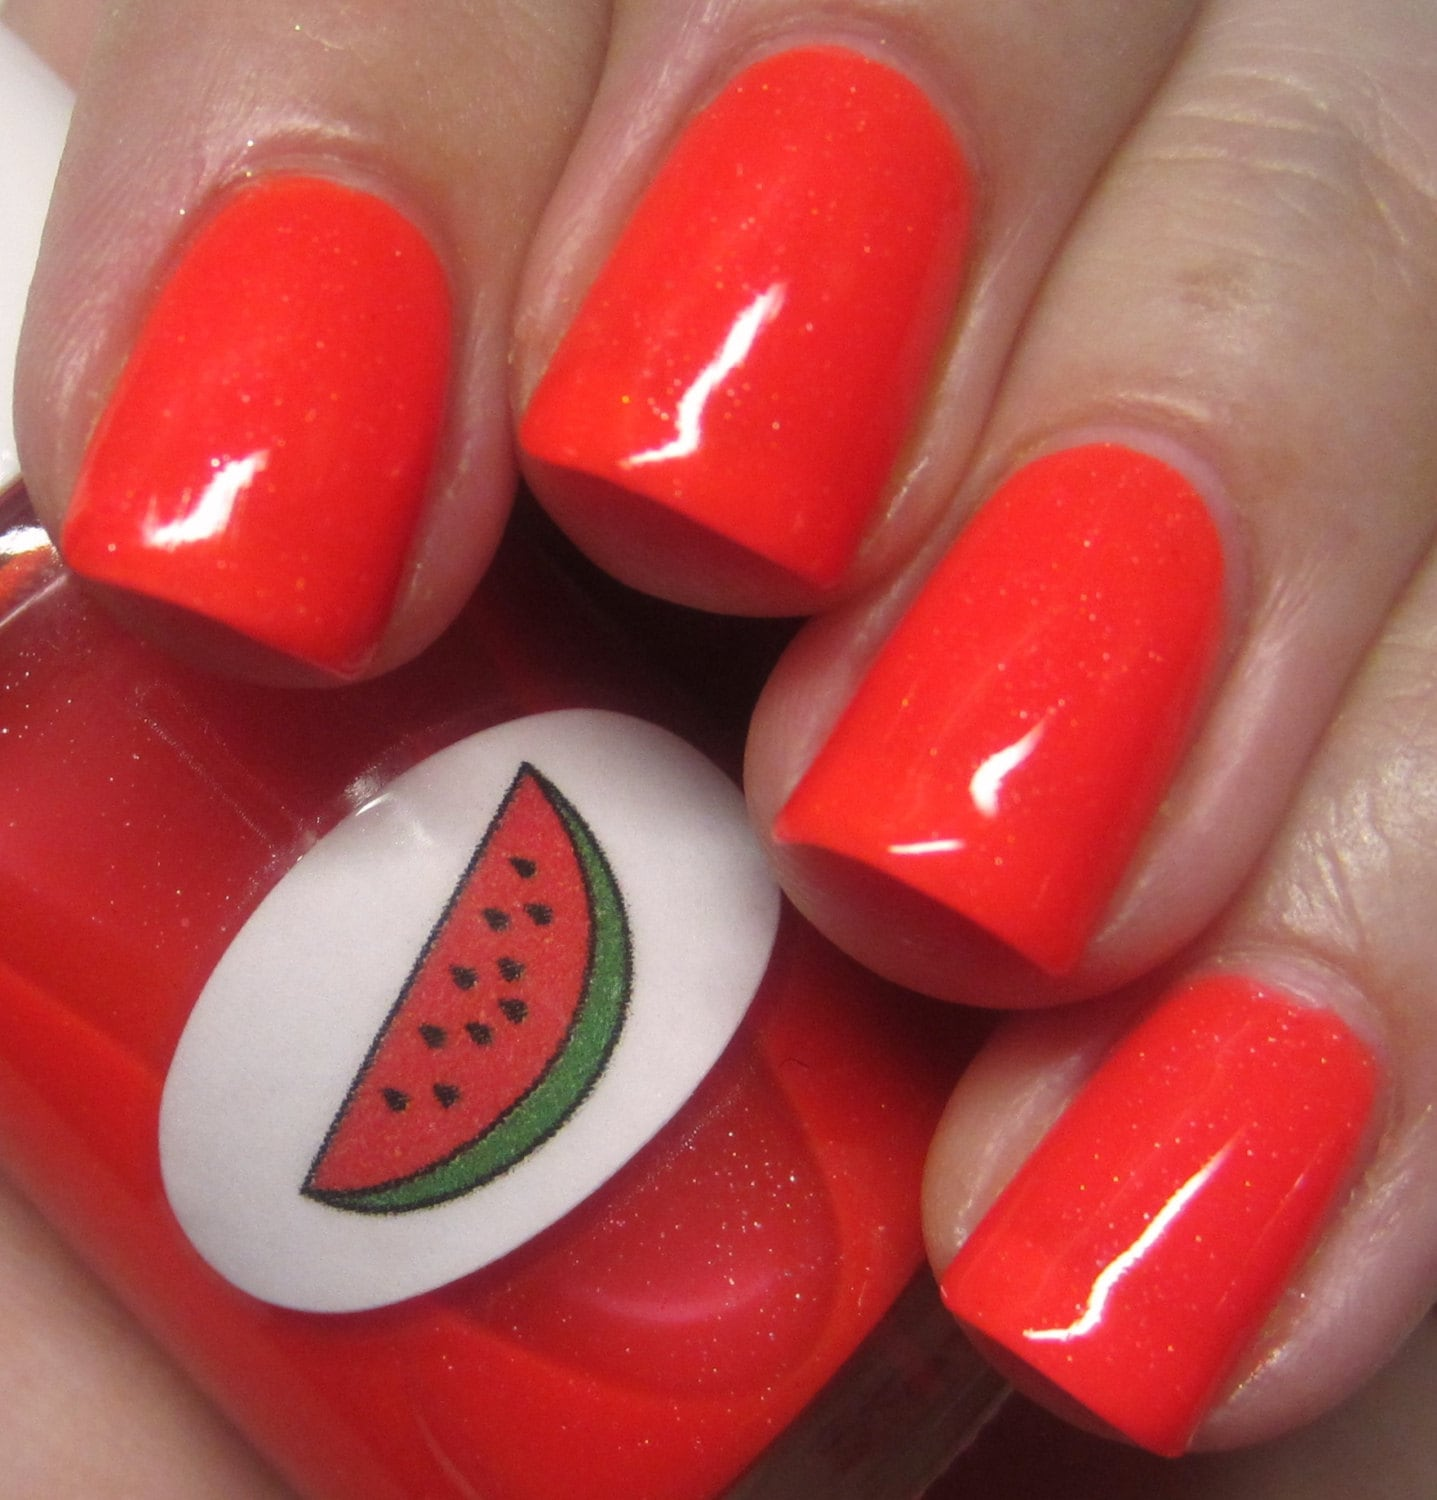 Shimmer Jelly Watermelon Nail Polish